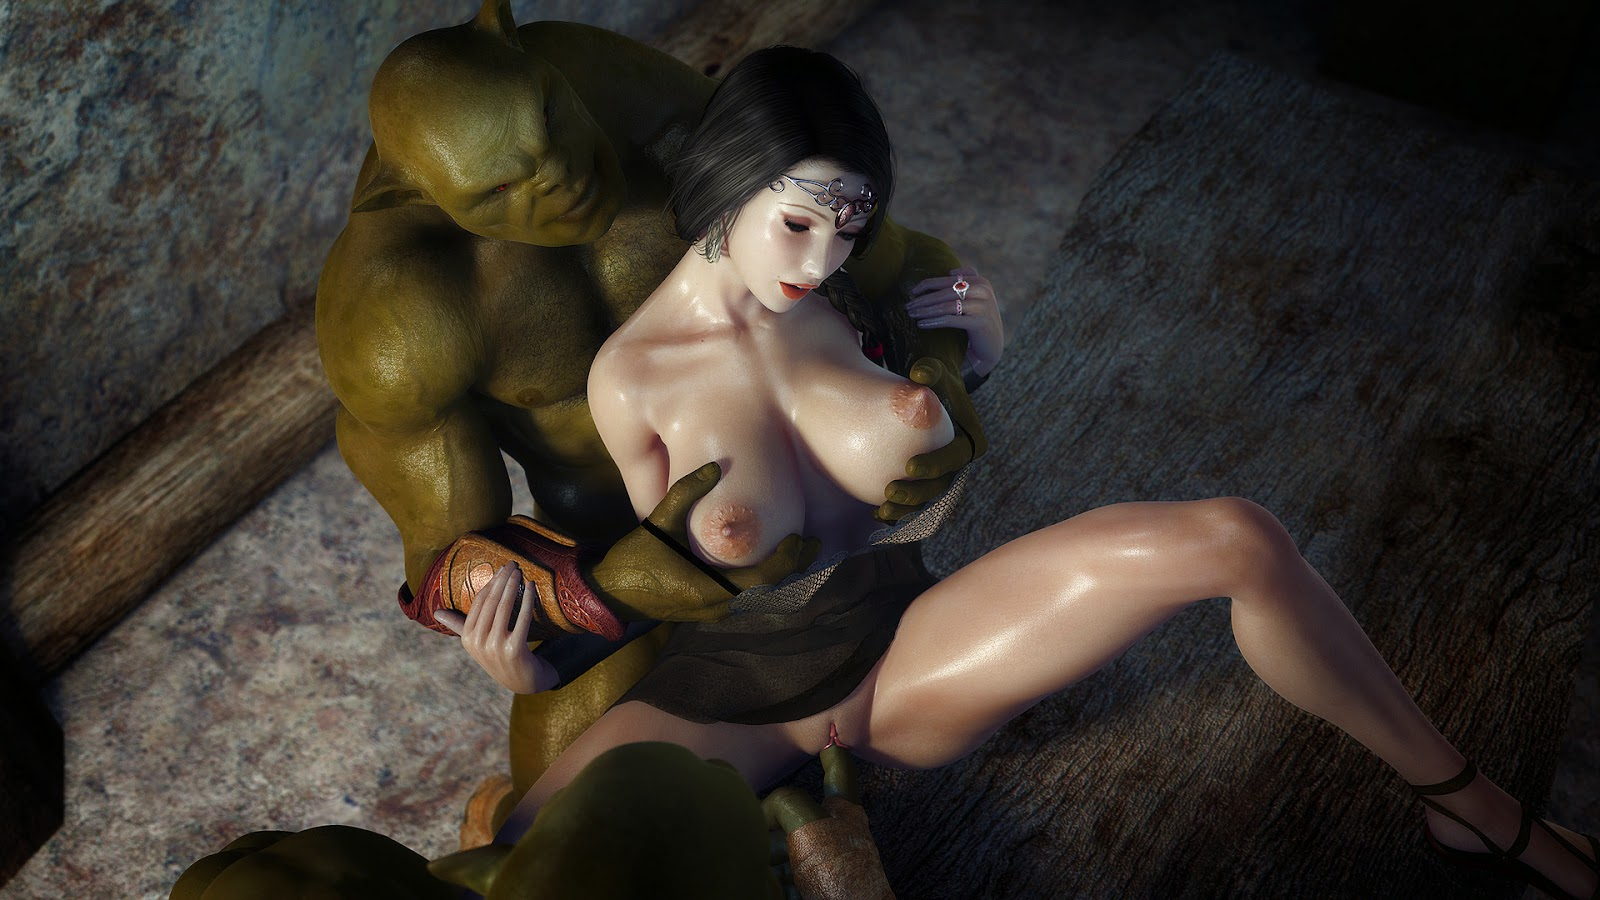 Secret of beauty orc ritual 10